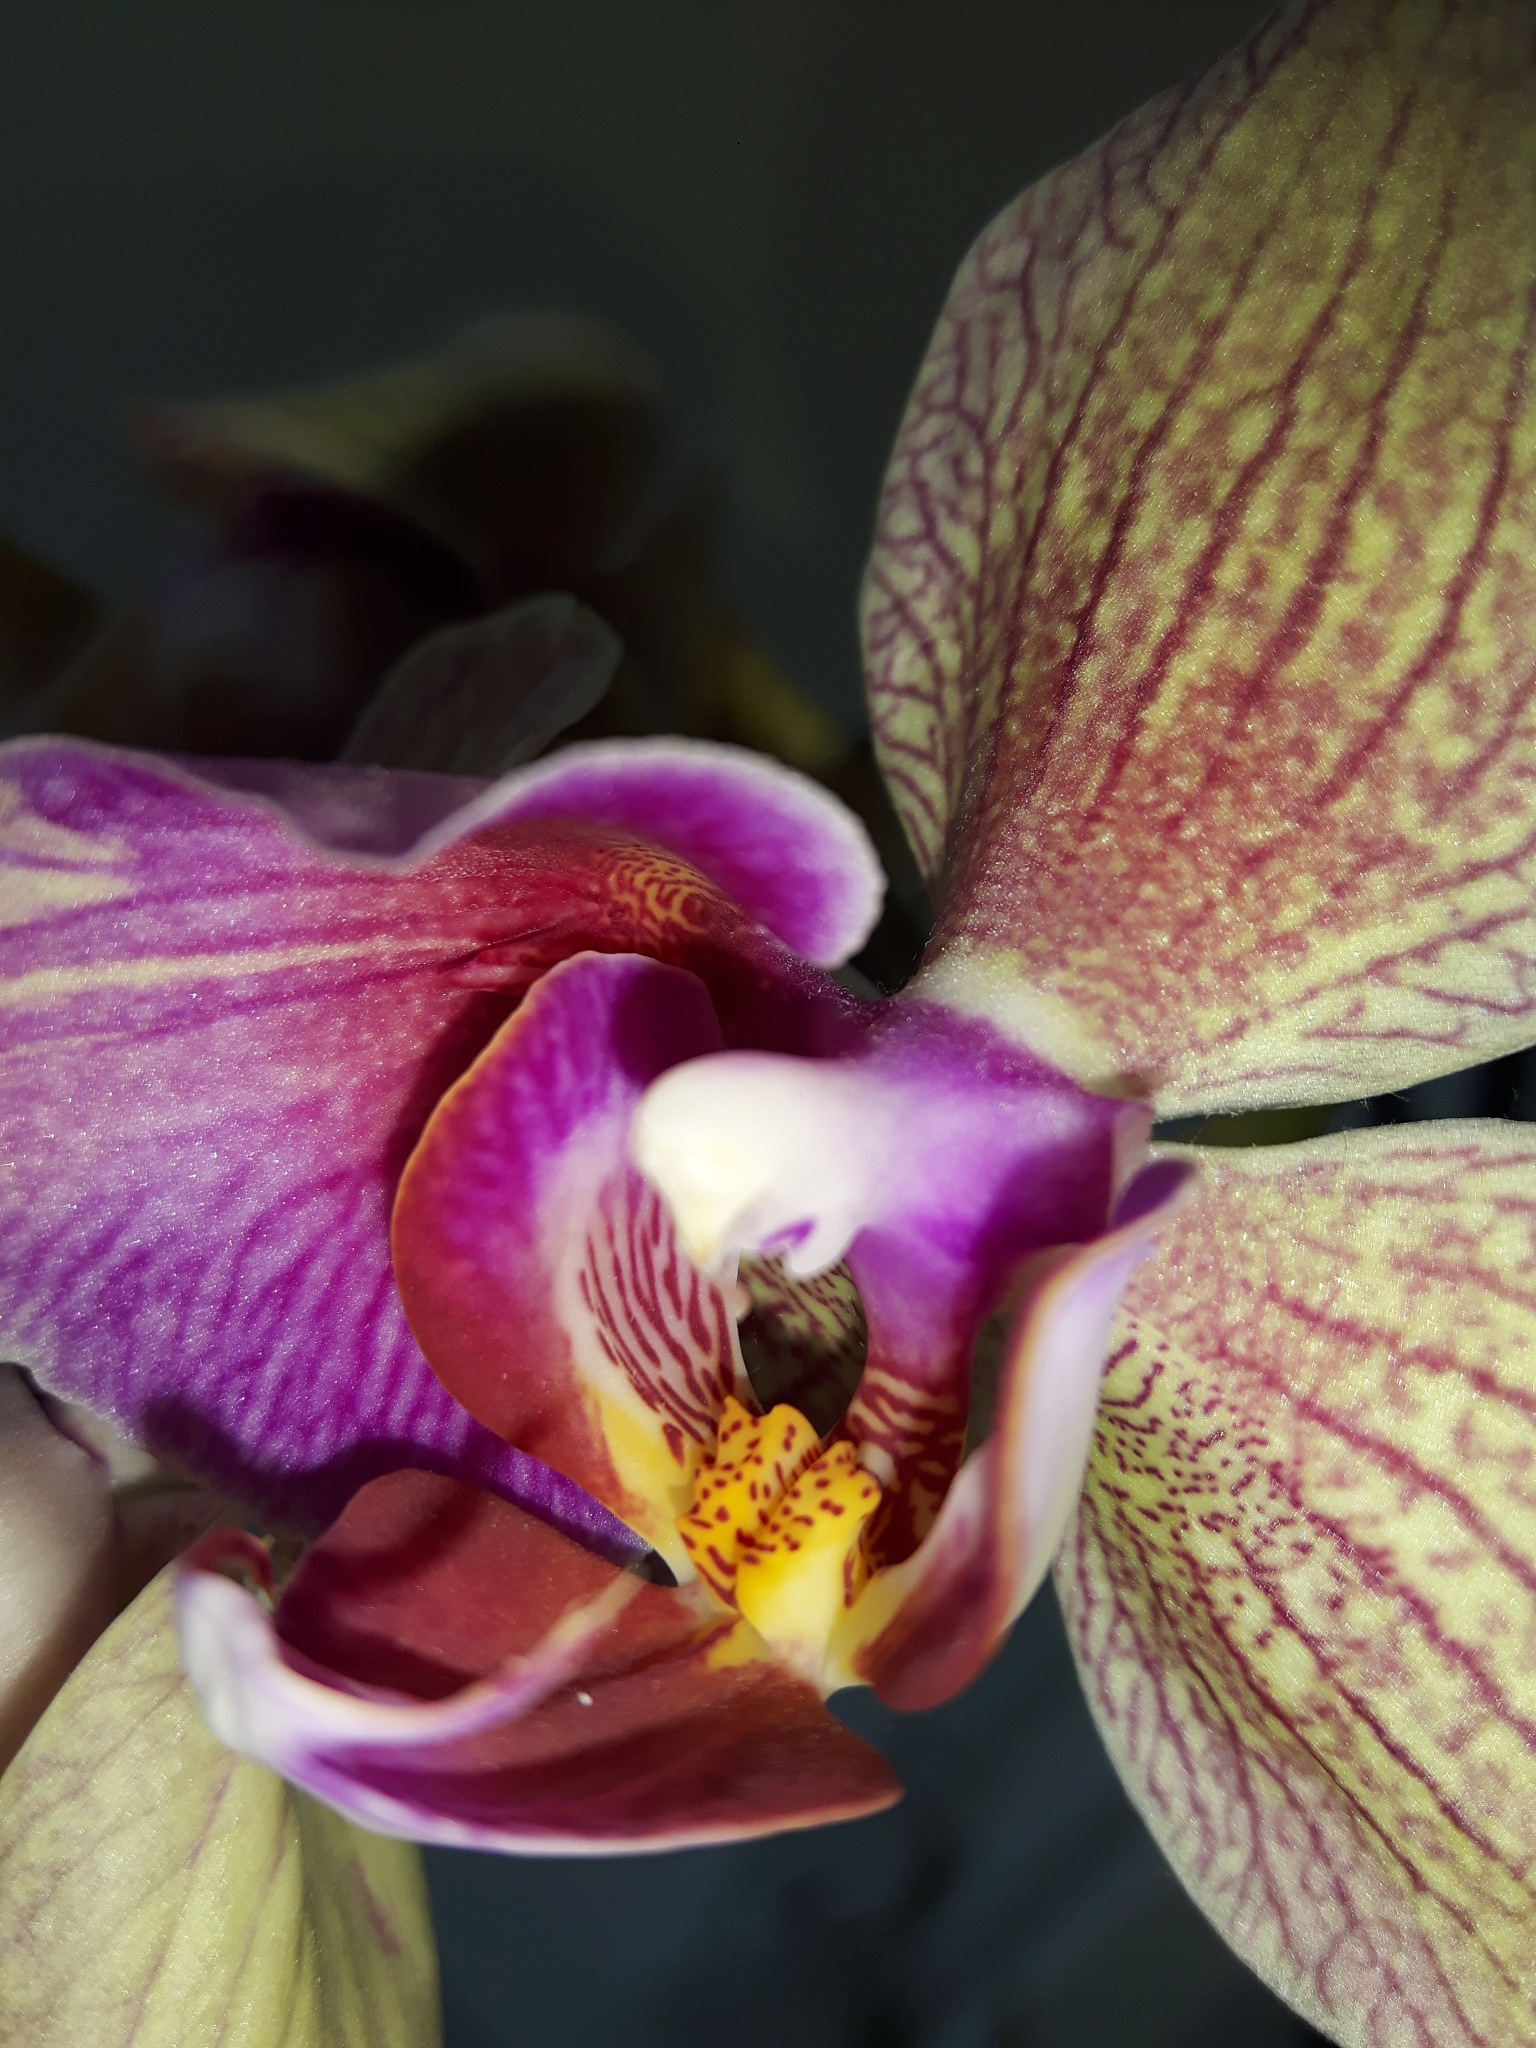 Inside of orchid intimacy by Mevludin_Hasanovic